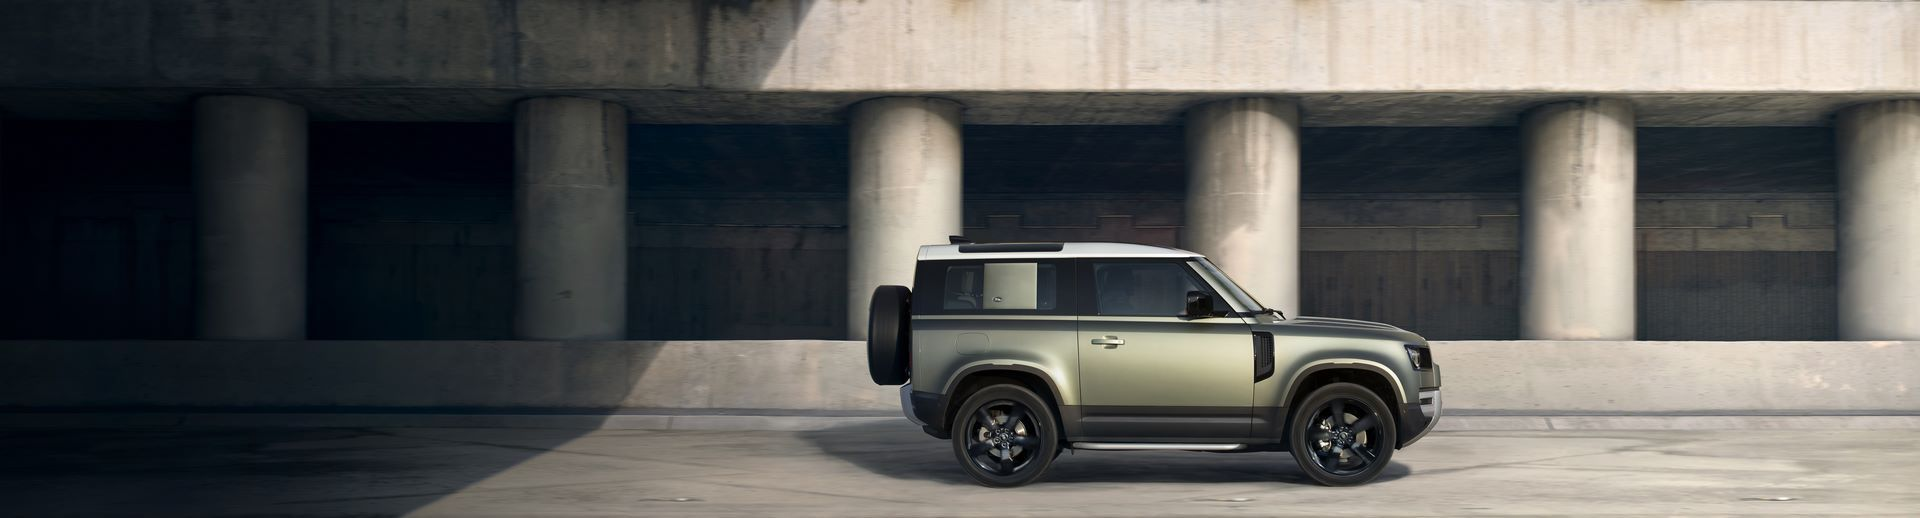 Land-Rover-Defender-2020-69